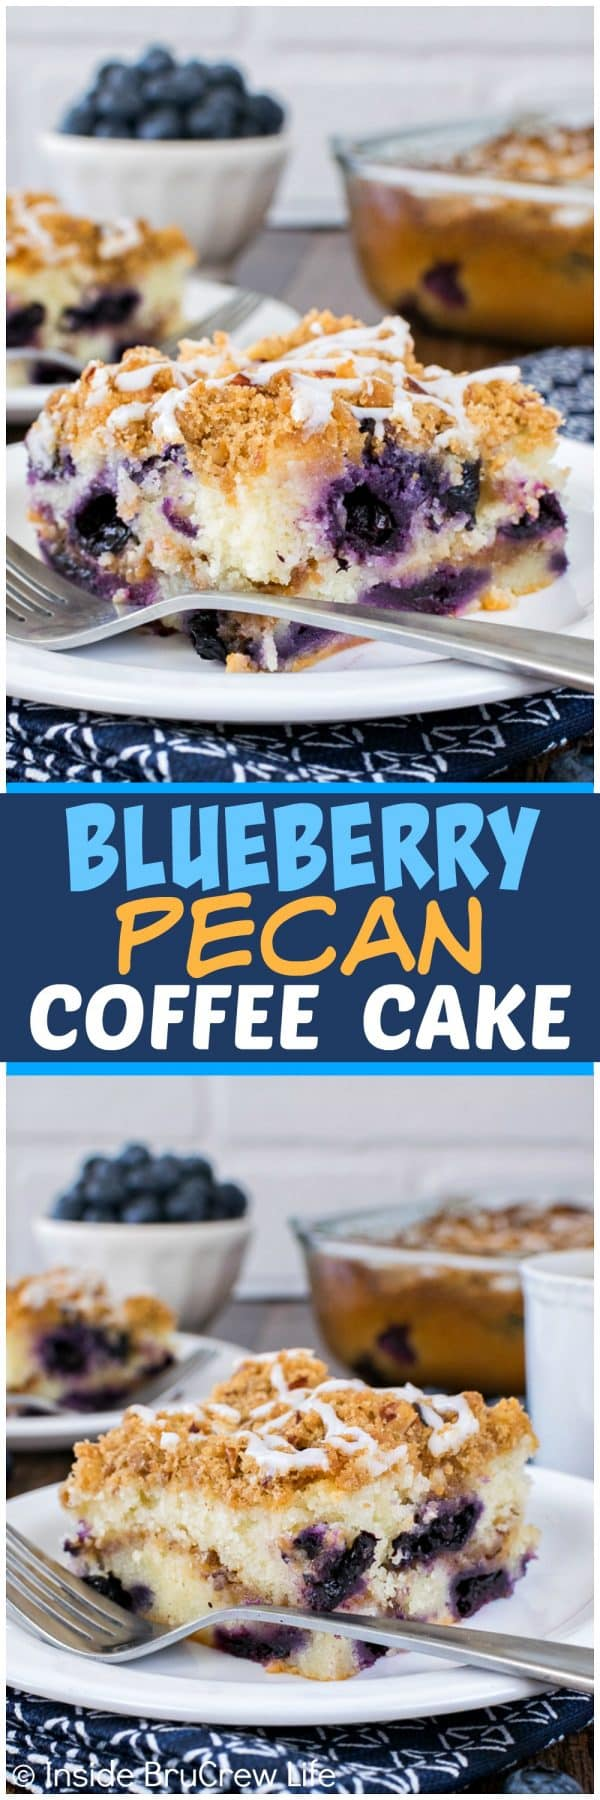 Blueberry Pecan Coffee Cake - this easy sweet cake is loaded with fresh berries and cinnamon sugar! Awesome recipe for breakfast or brunch!